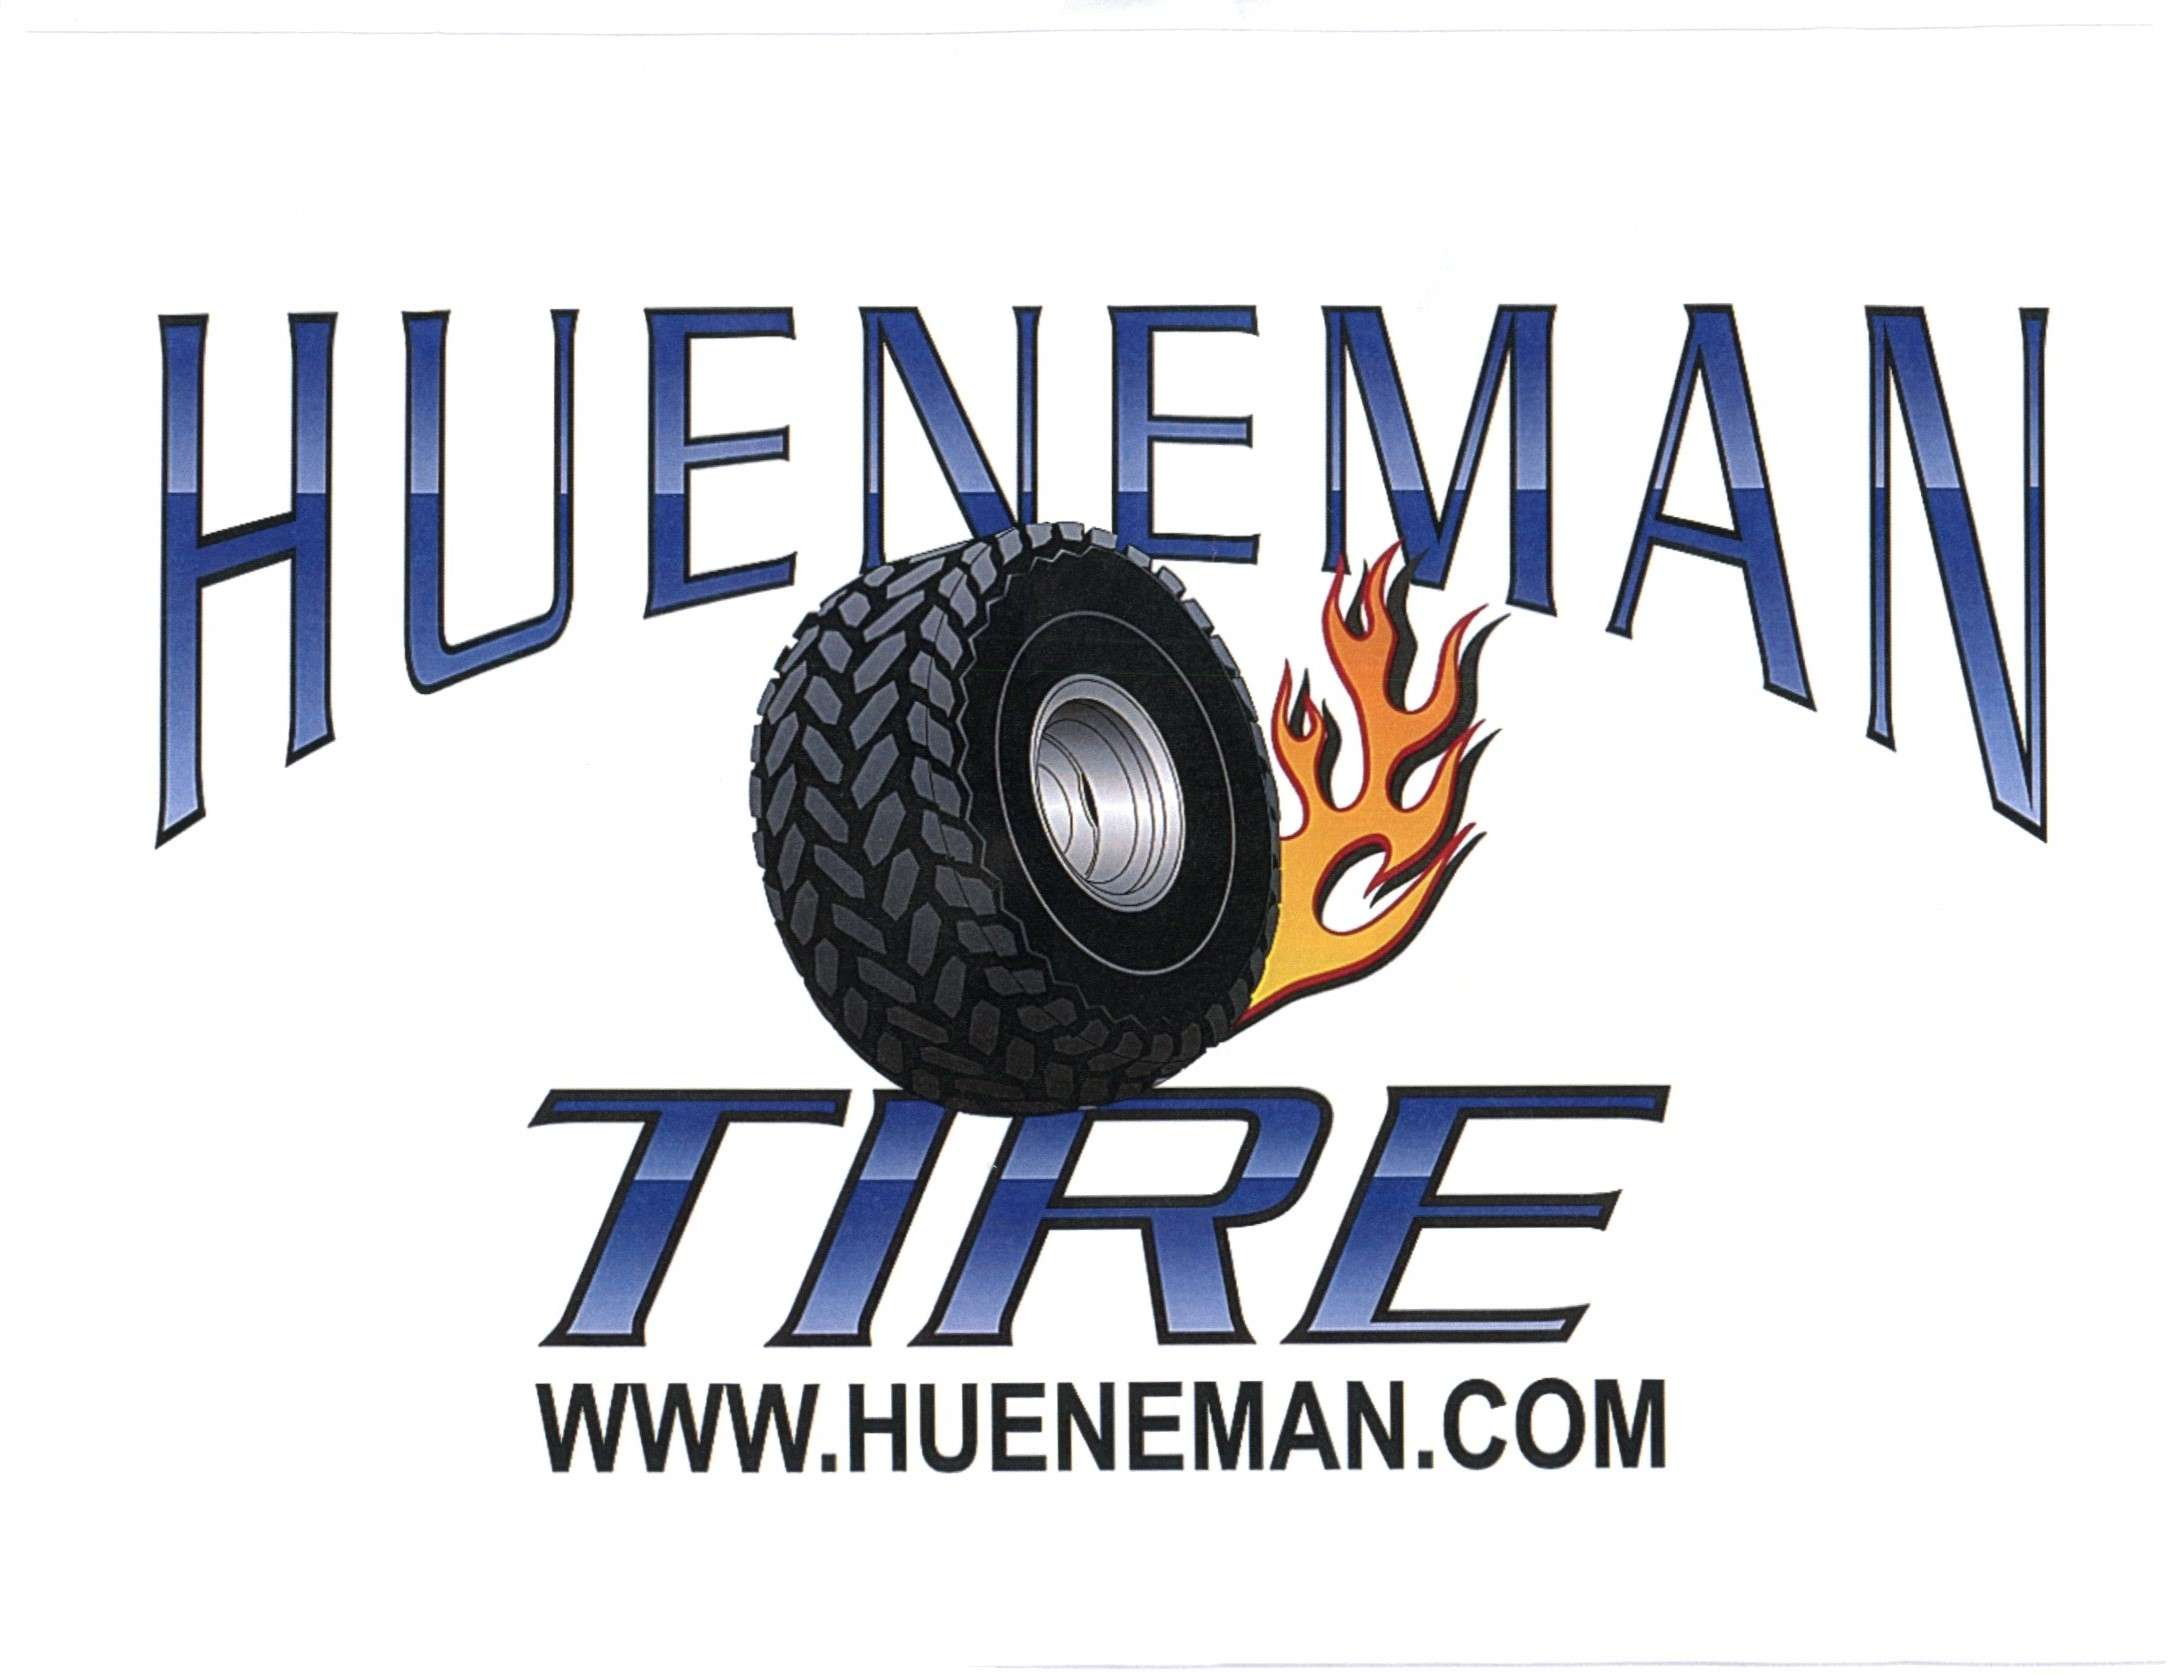 Hueneman Tire